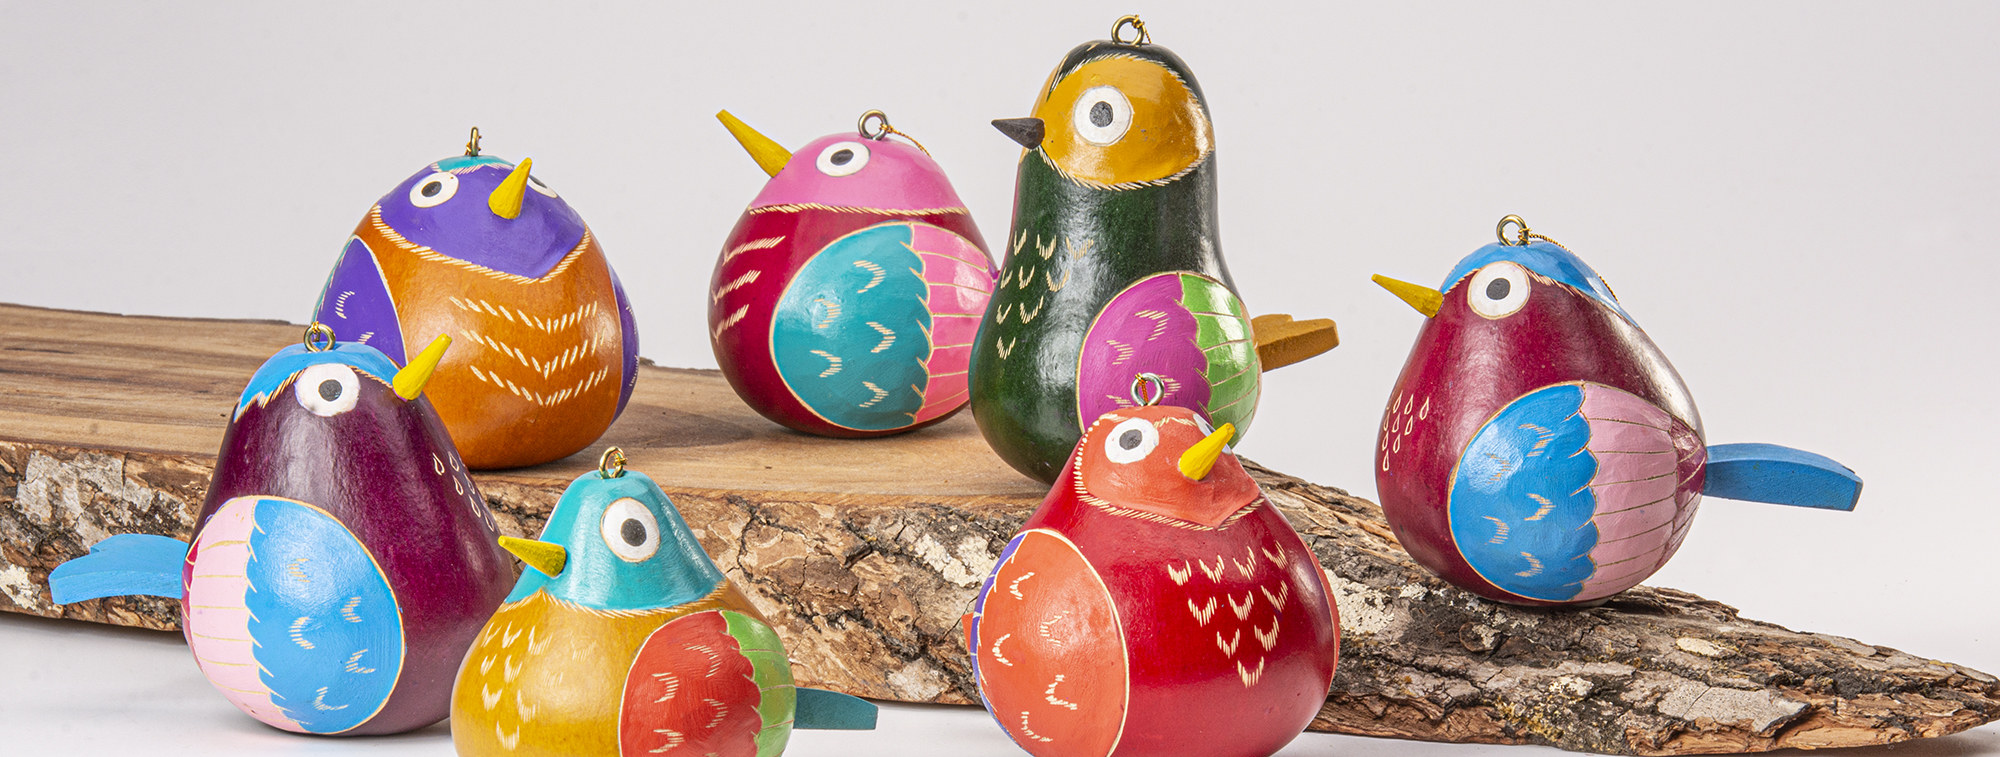 hand-carved and painted birdie ornaments